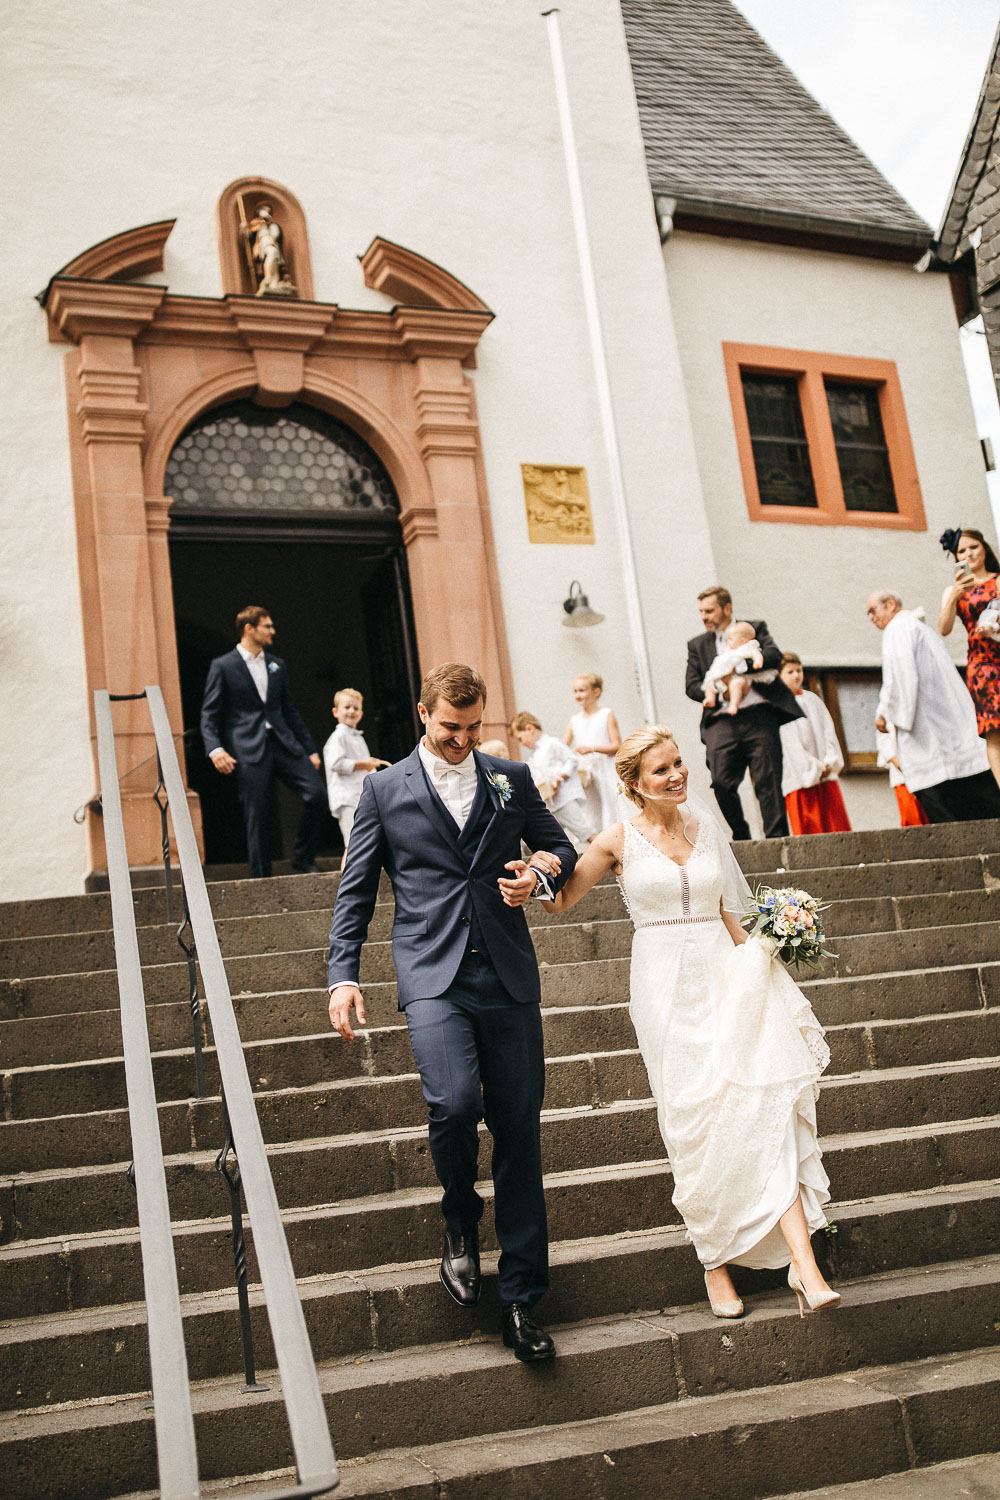 raissa simon photography wedding mosel kloster machern love authentic 236 - Kathrin + Dominik